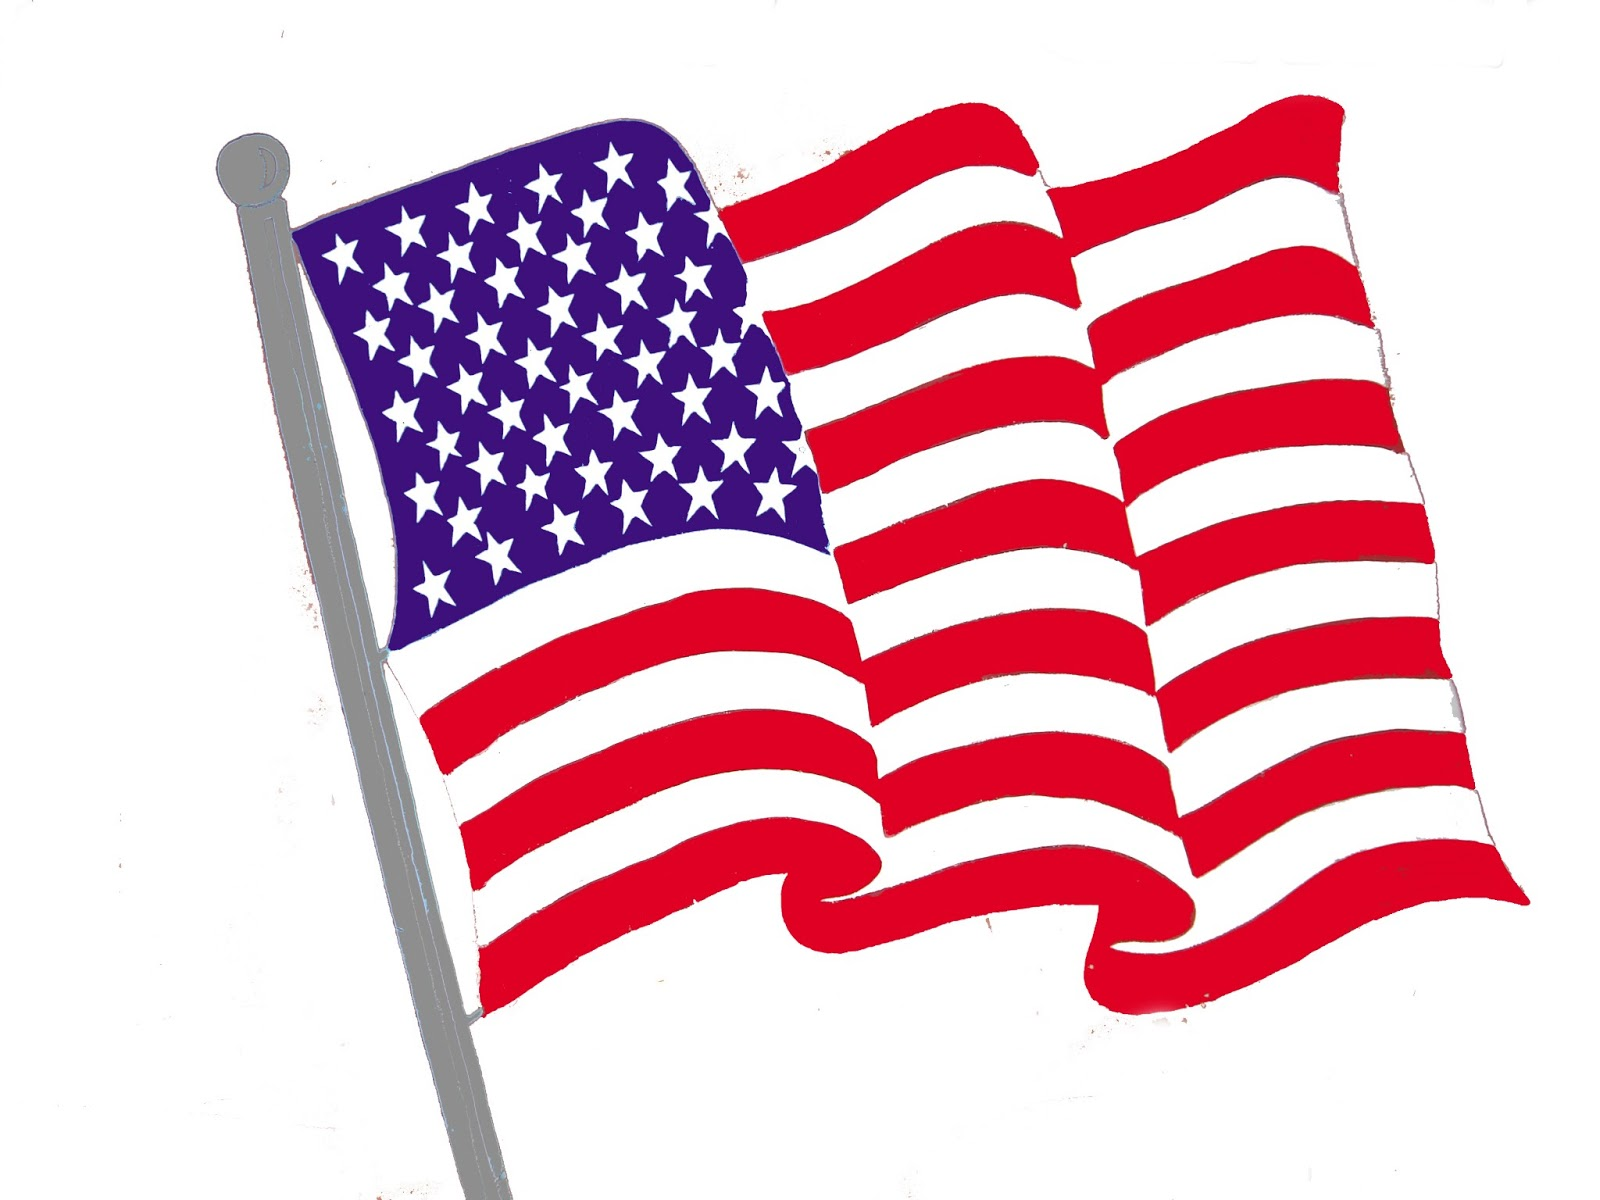 American Flag clipart American Cliparting states ima Flag